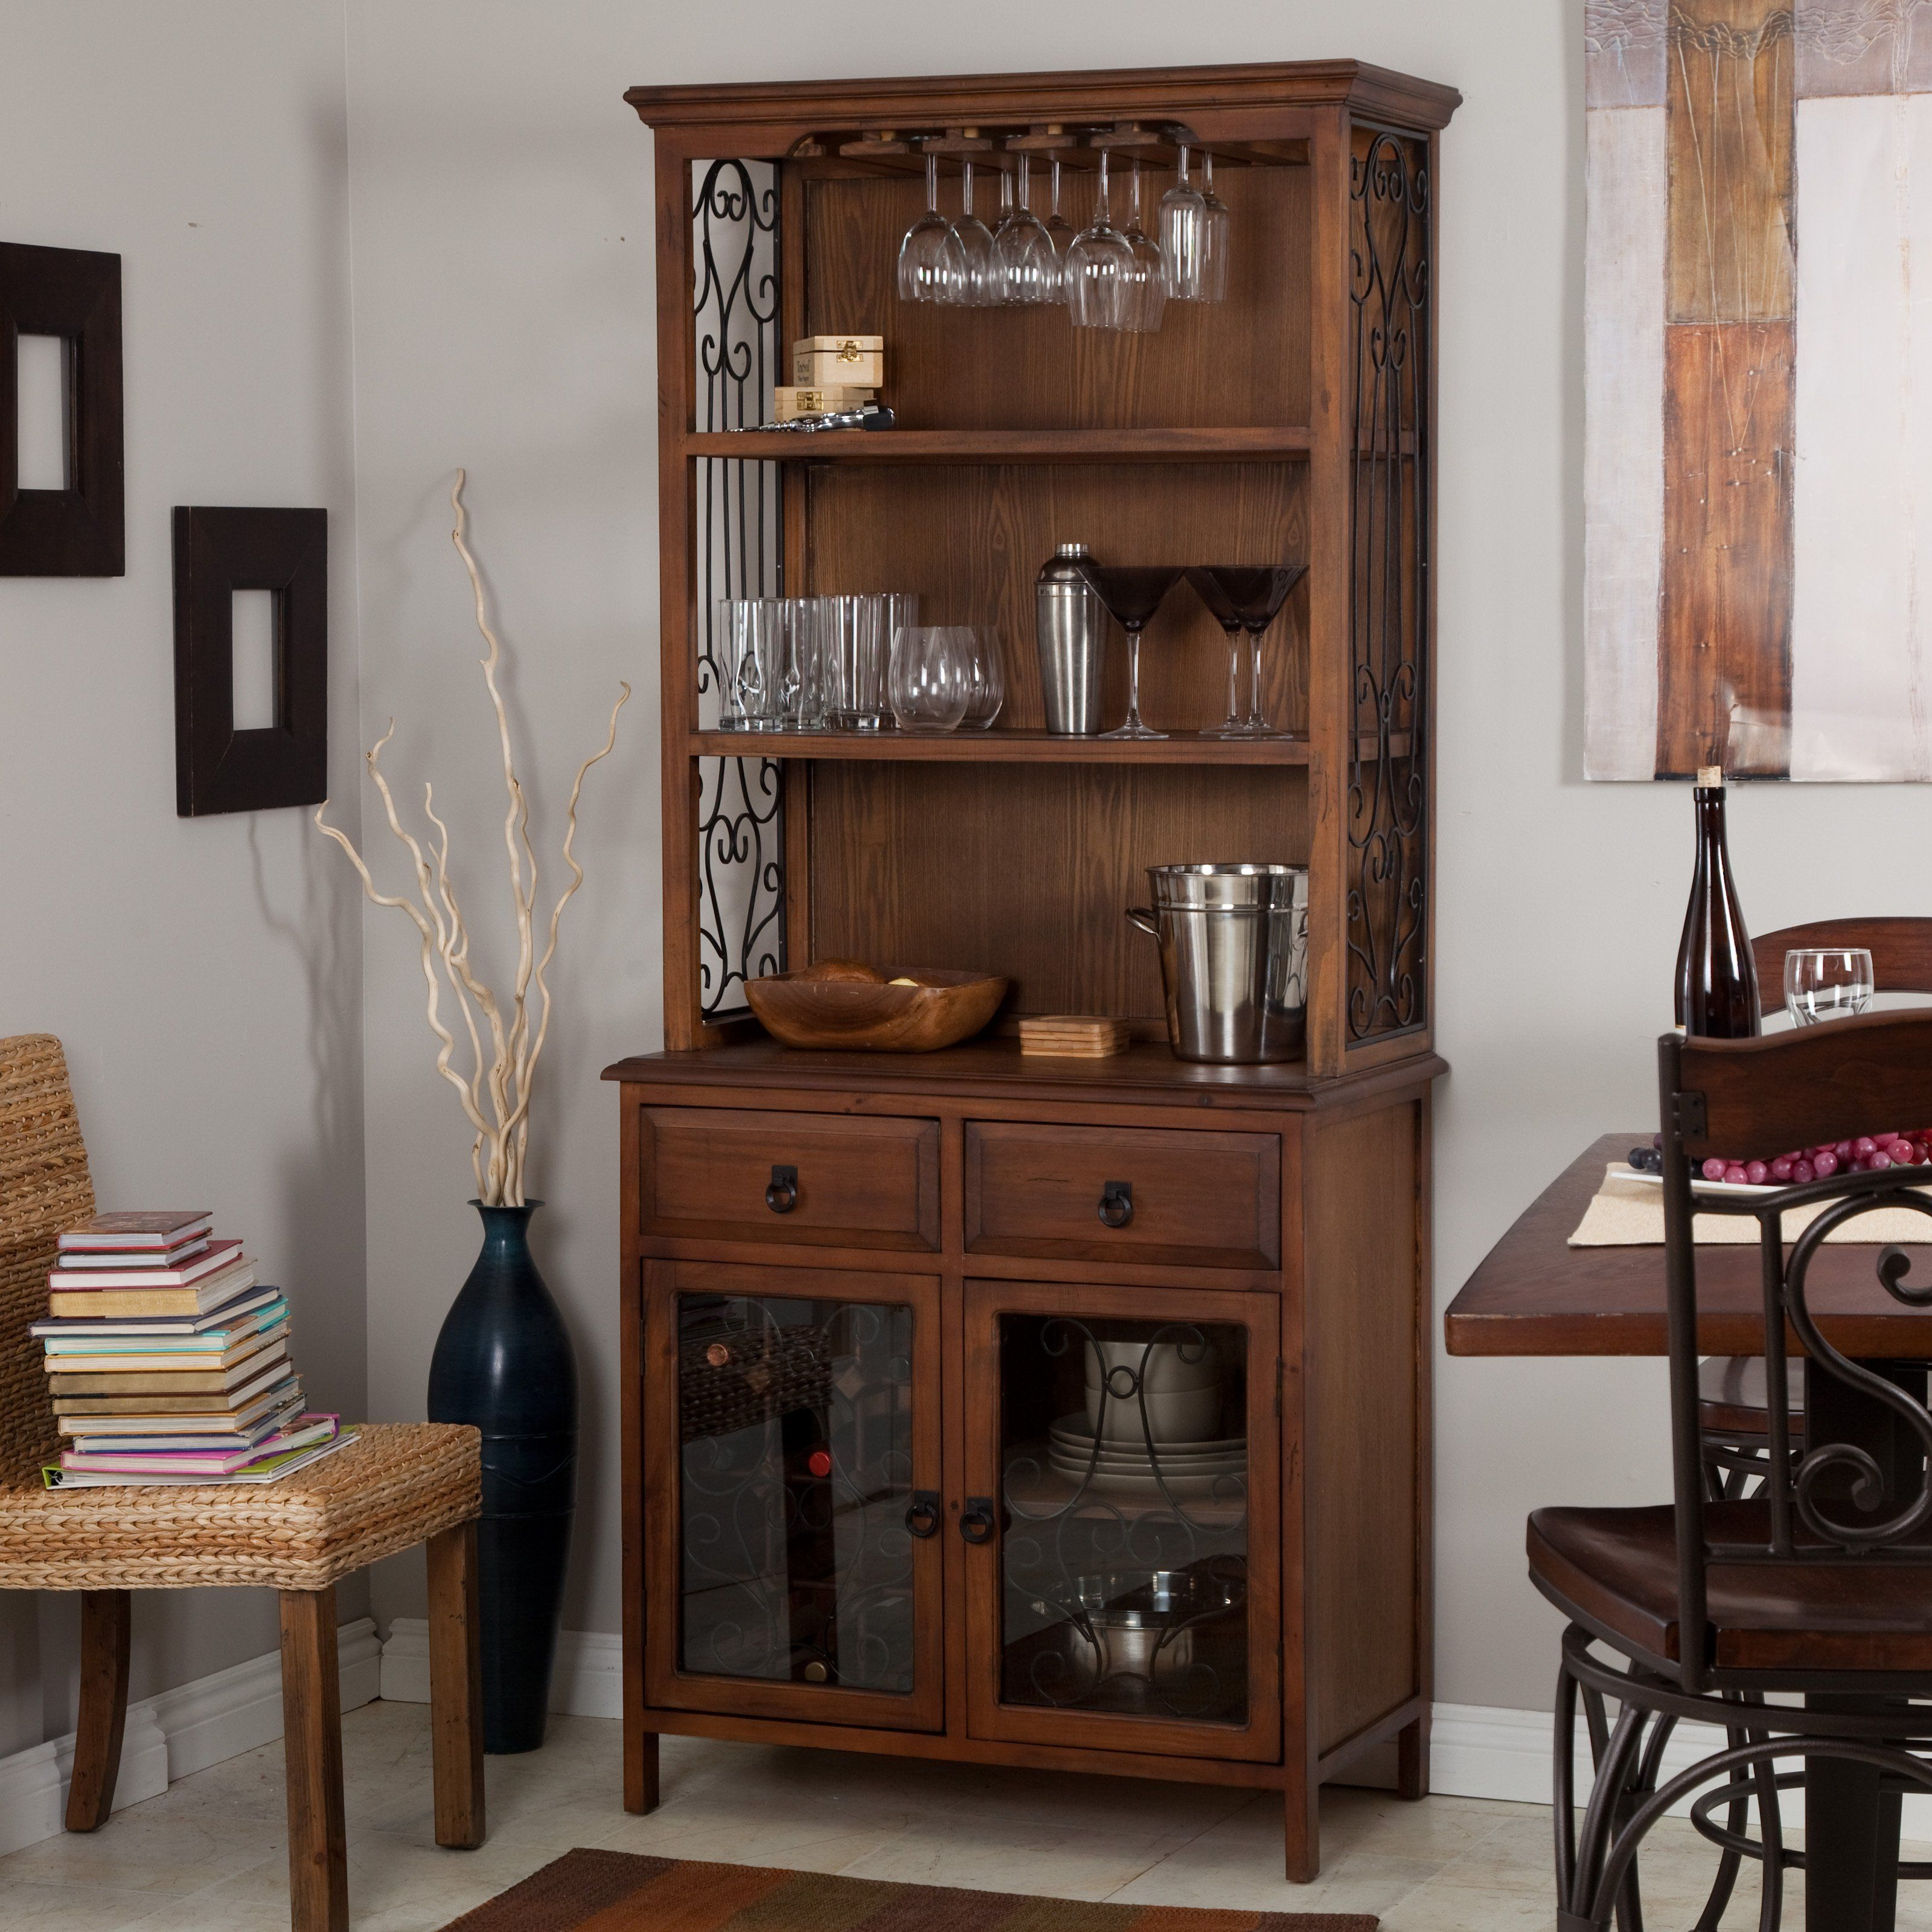 Belham Living Genova Bakers Rack With Wine Storage   Dark Oak   $329.98  @hayneedle.com